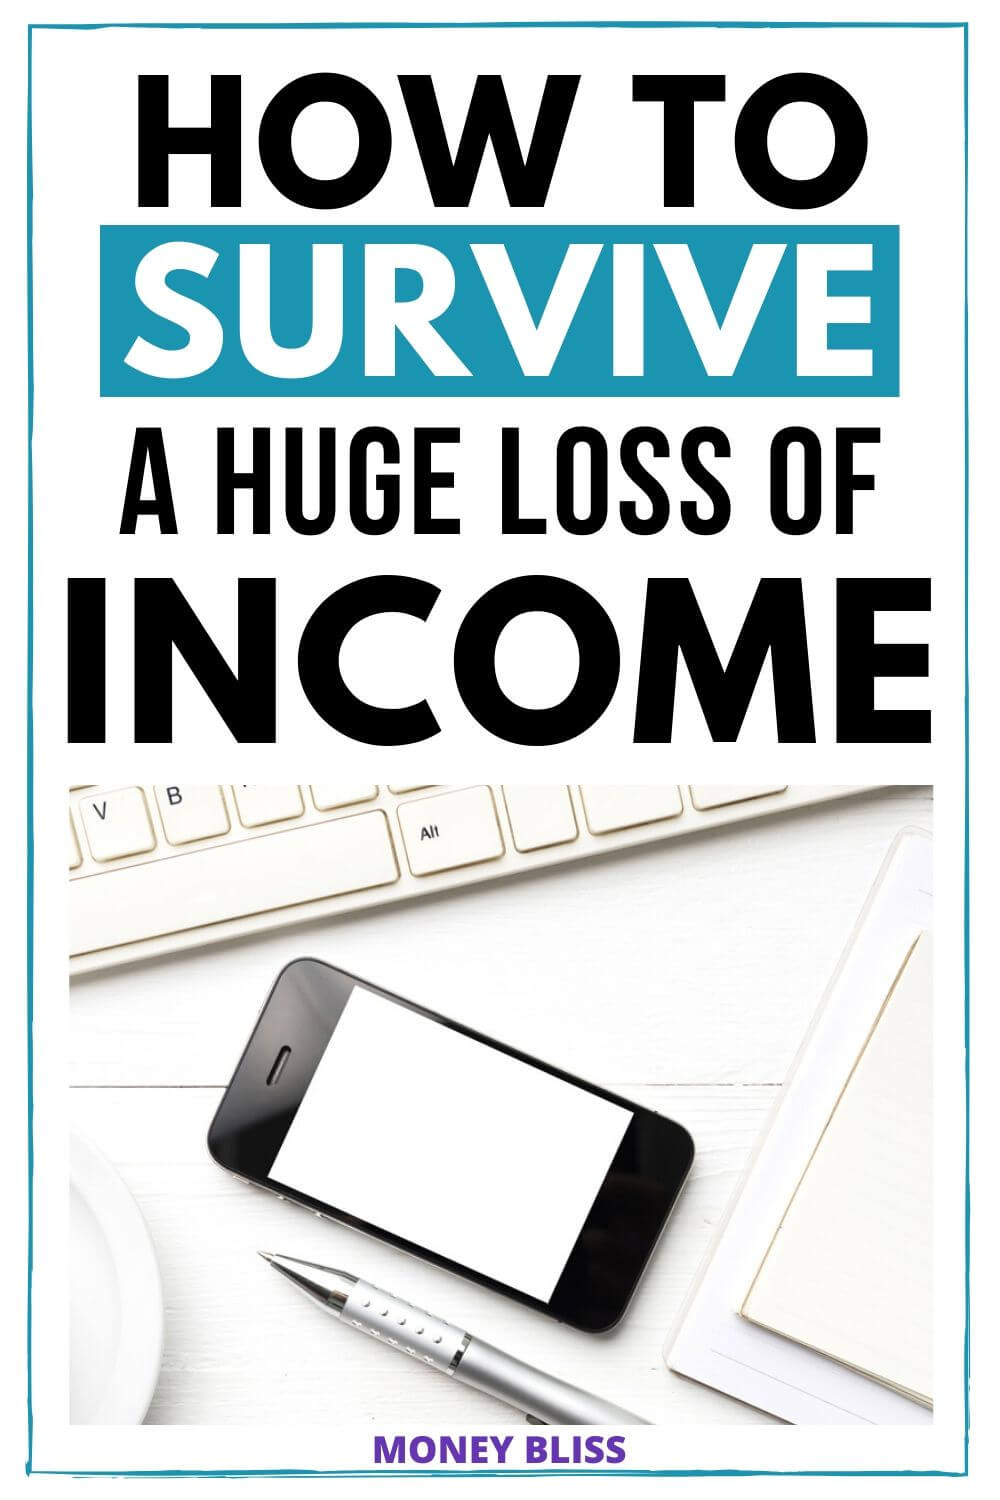 What to do with a loss of income? Did you lose your job? Learn how to survive a drop in income with these simple tips. A sudden loss of income doesn't have to ruin your personal finances.